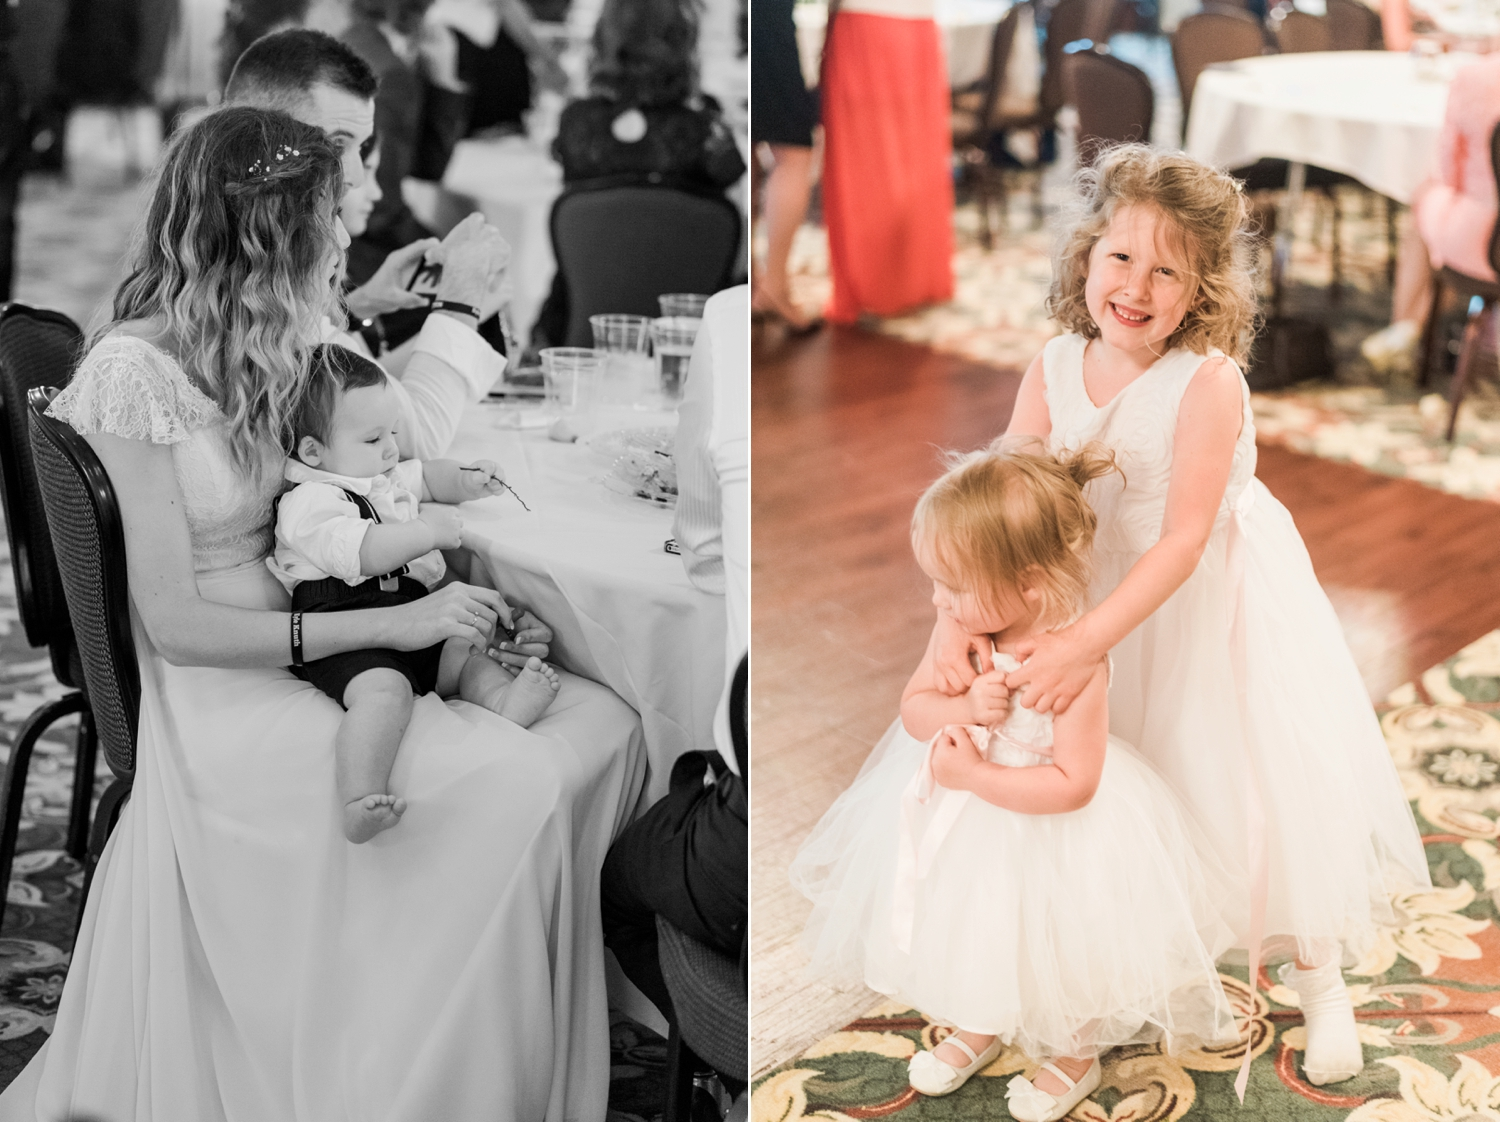 Community_Life_Center_Indianapolis_Indiana_Wedding_Photographer_Chloe_Luka_Photography_6985.jpg